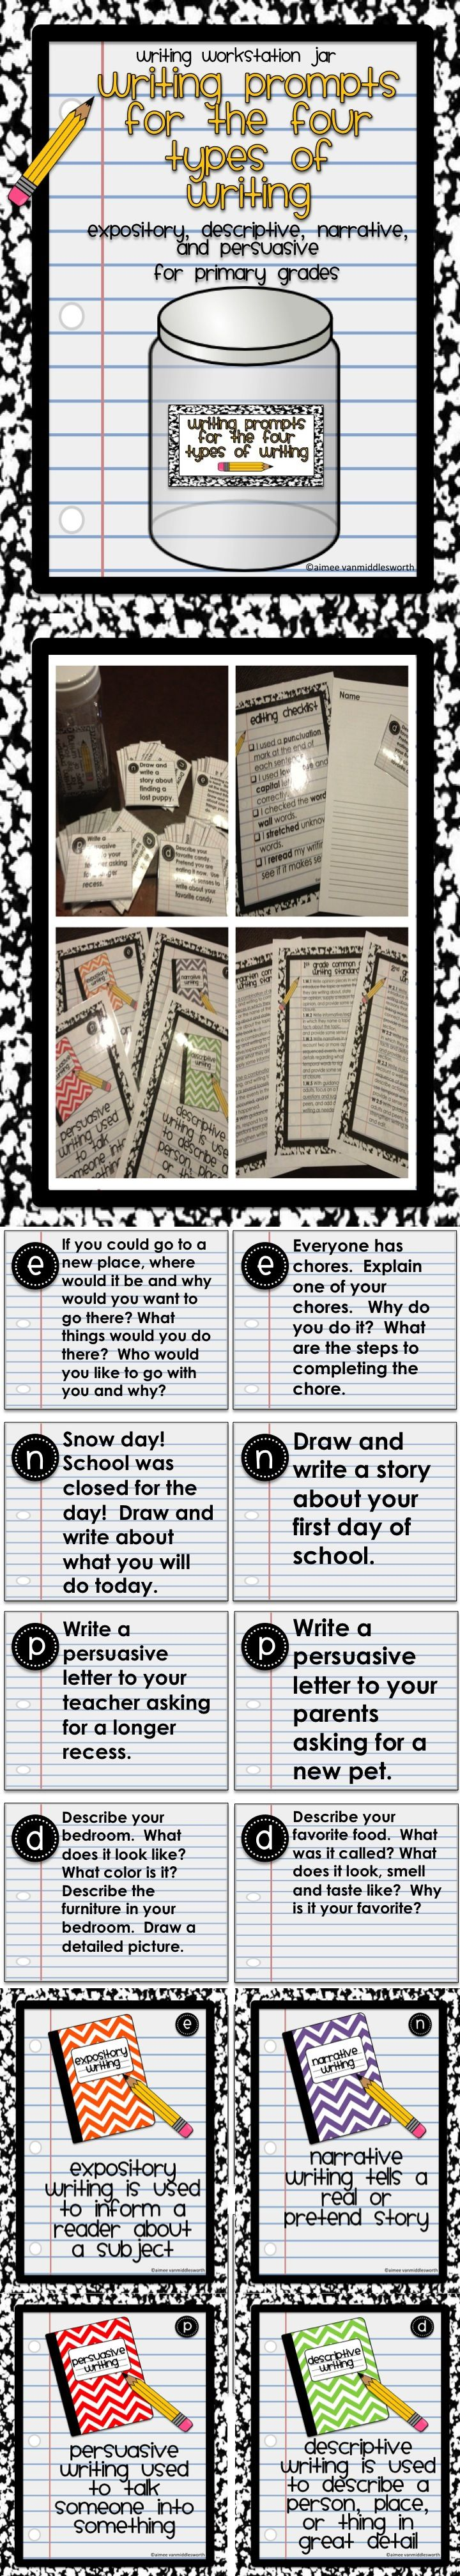 writing and the common core English worksheets that are aligned to the 5th grade common core standards for writing.